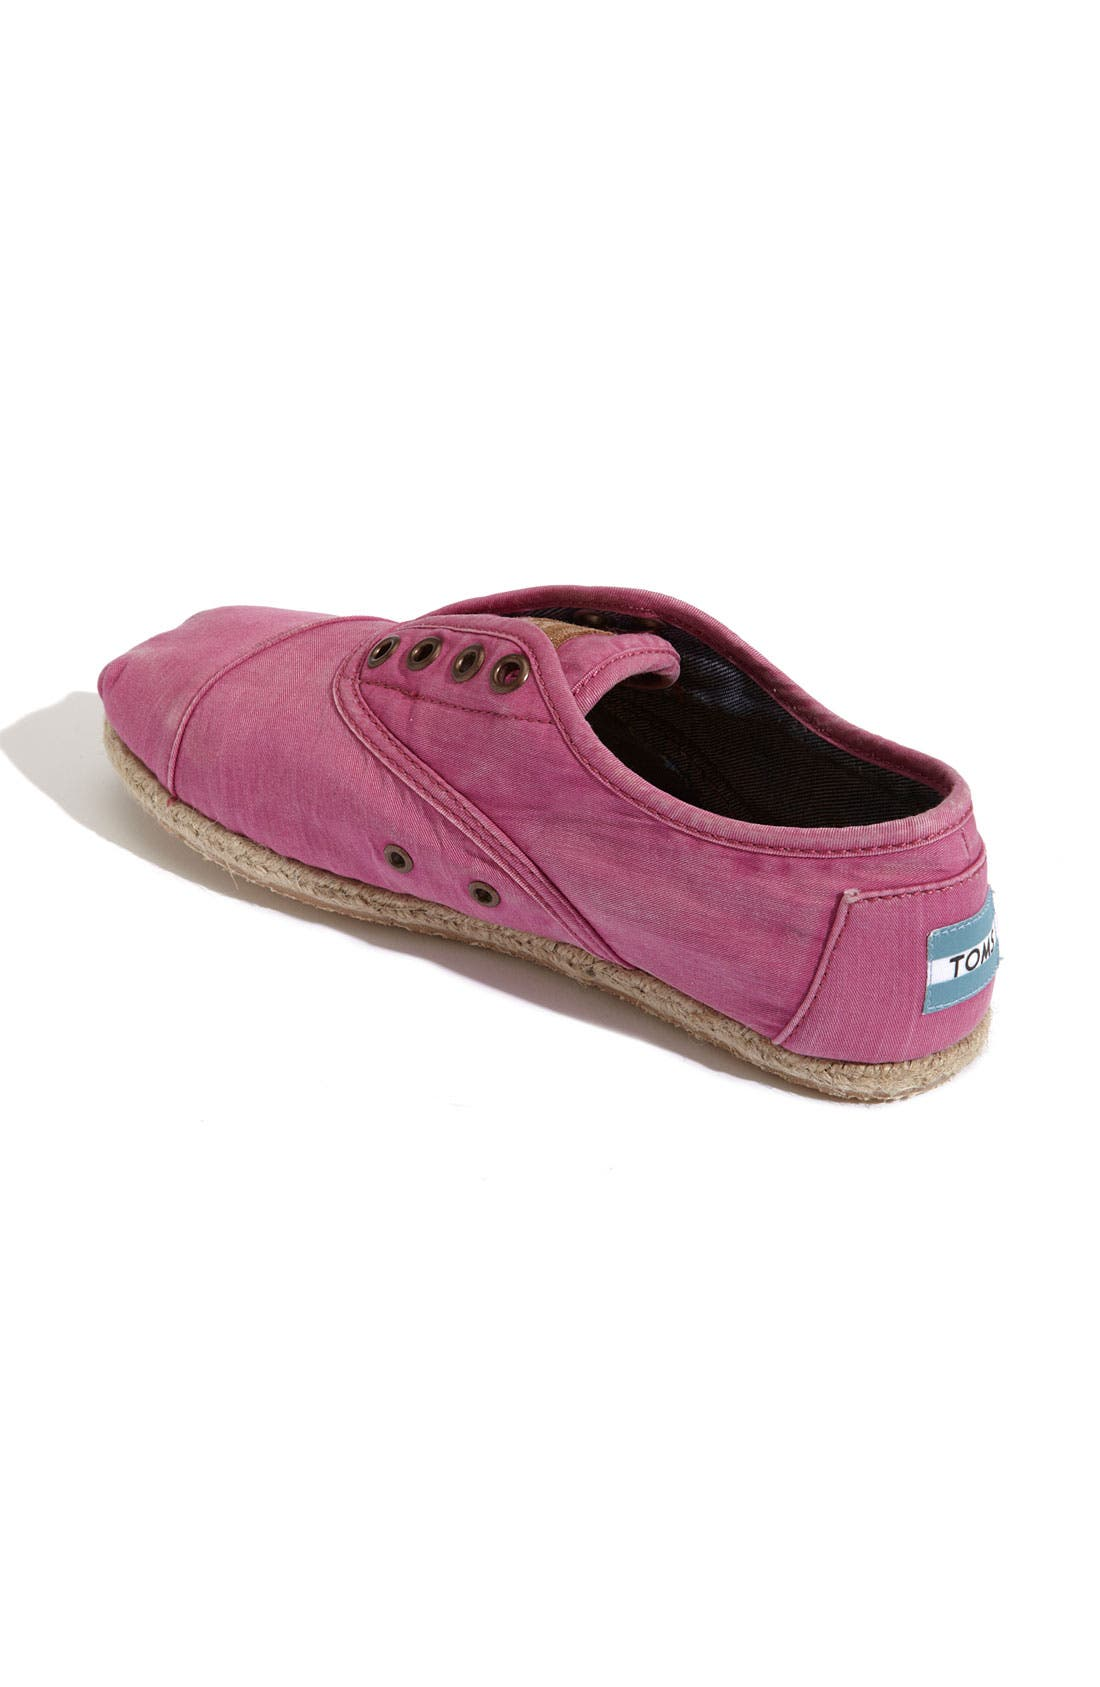 Alternate Image 2  - TOMS 'Cordones - Ceara' Slip-On (Women)